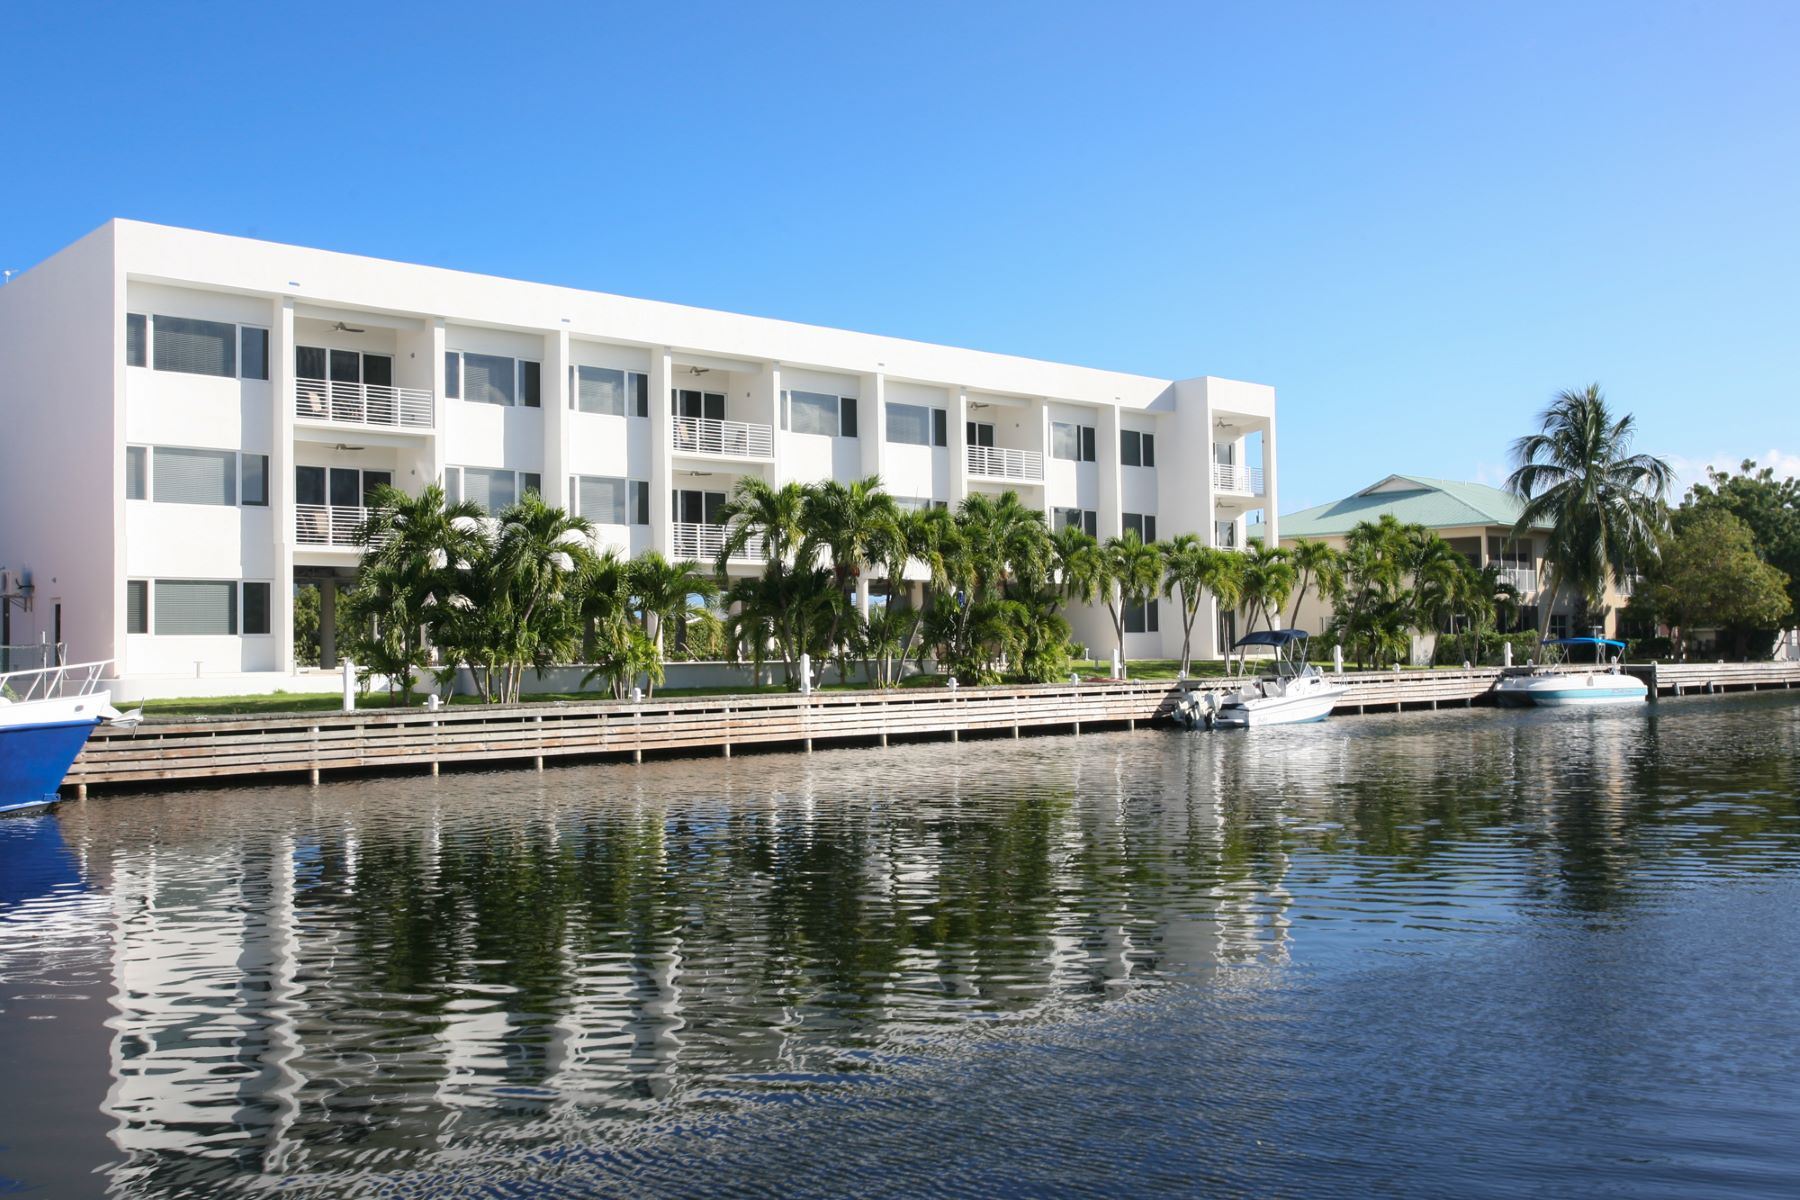 Condominium for Rent at Palm Heights Residences top floor rental Snug Harbour, Cayman Islands